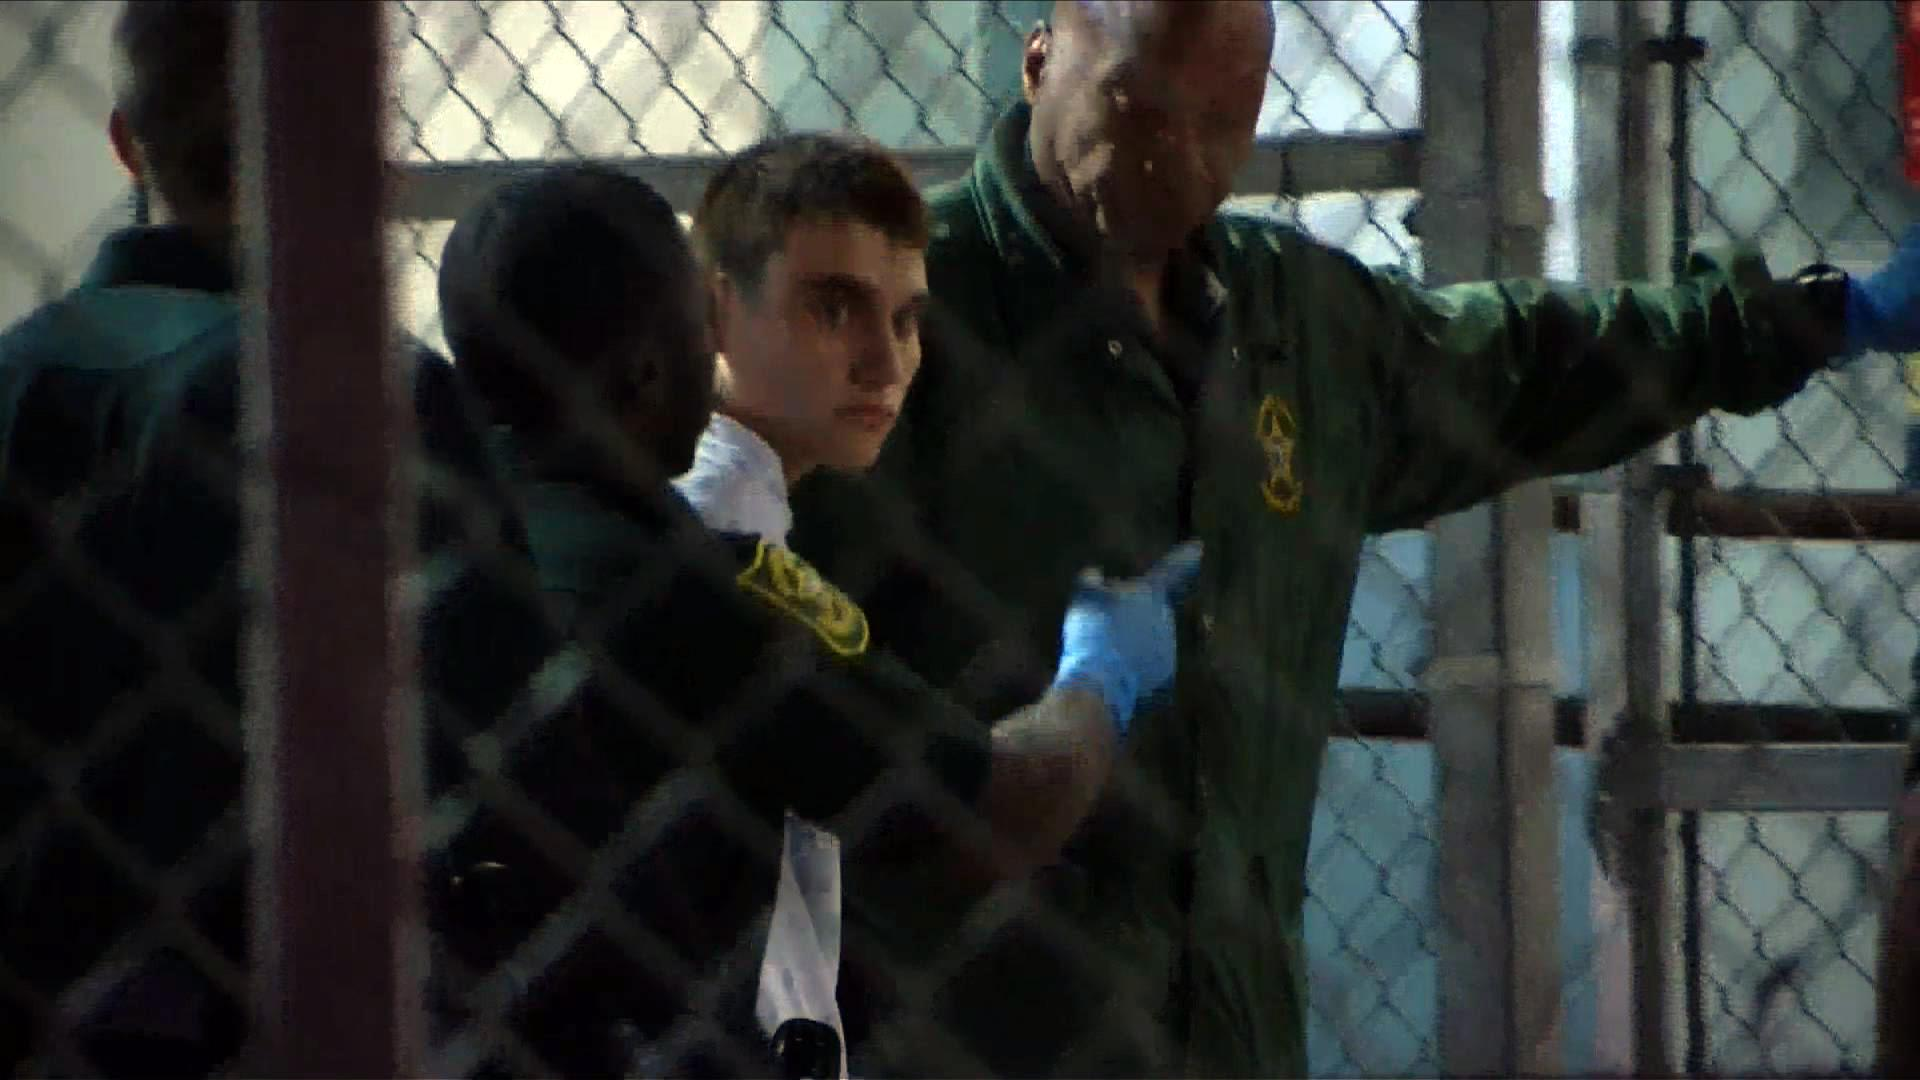 Shooting suspect Nikolas Cruz was transferred from a hospital to Broward County Jail in Ft. Lauderdale, Florida on Thursday.